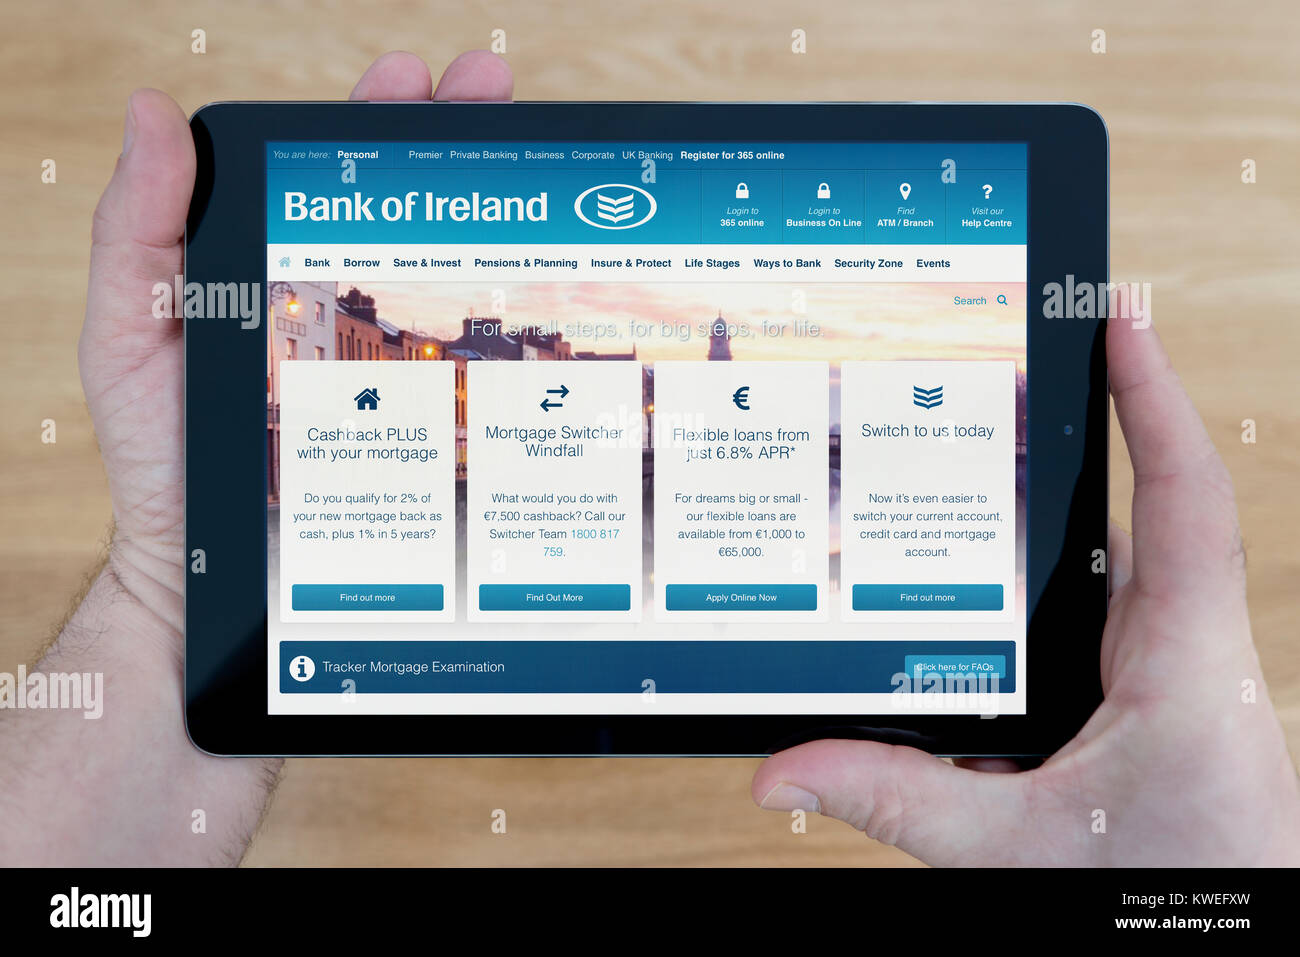 A man looks at the Bank of Ireland website on his iPad tablet device, shot against a wooden table top background - Stock Image